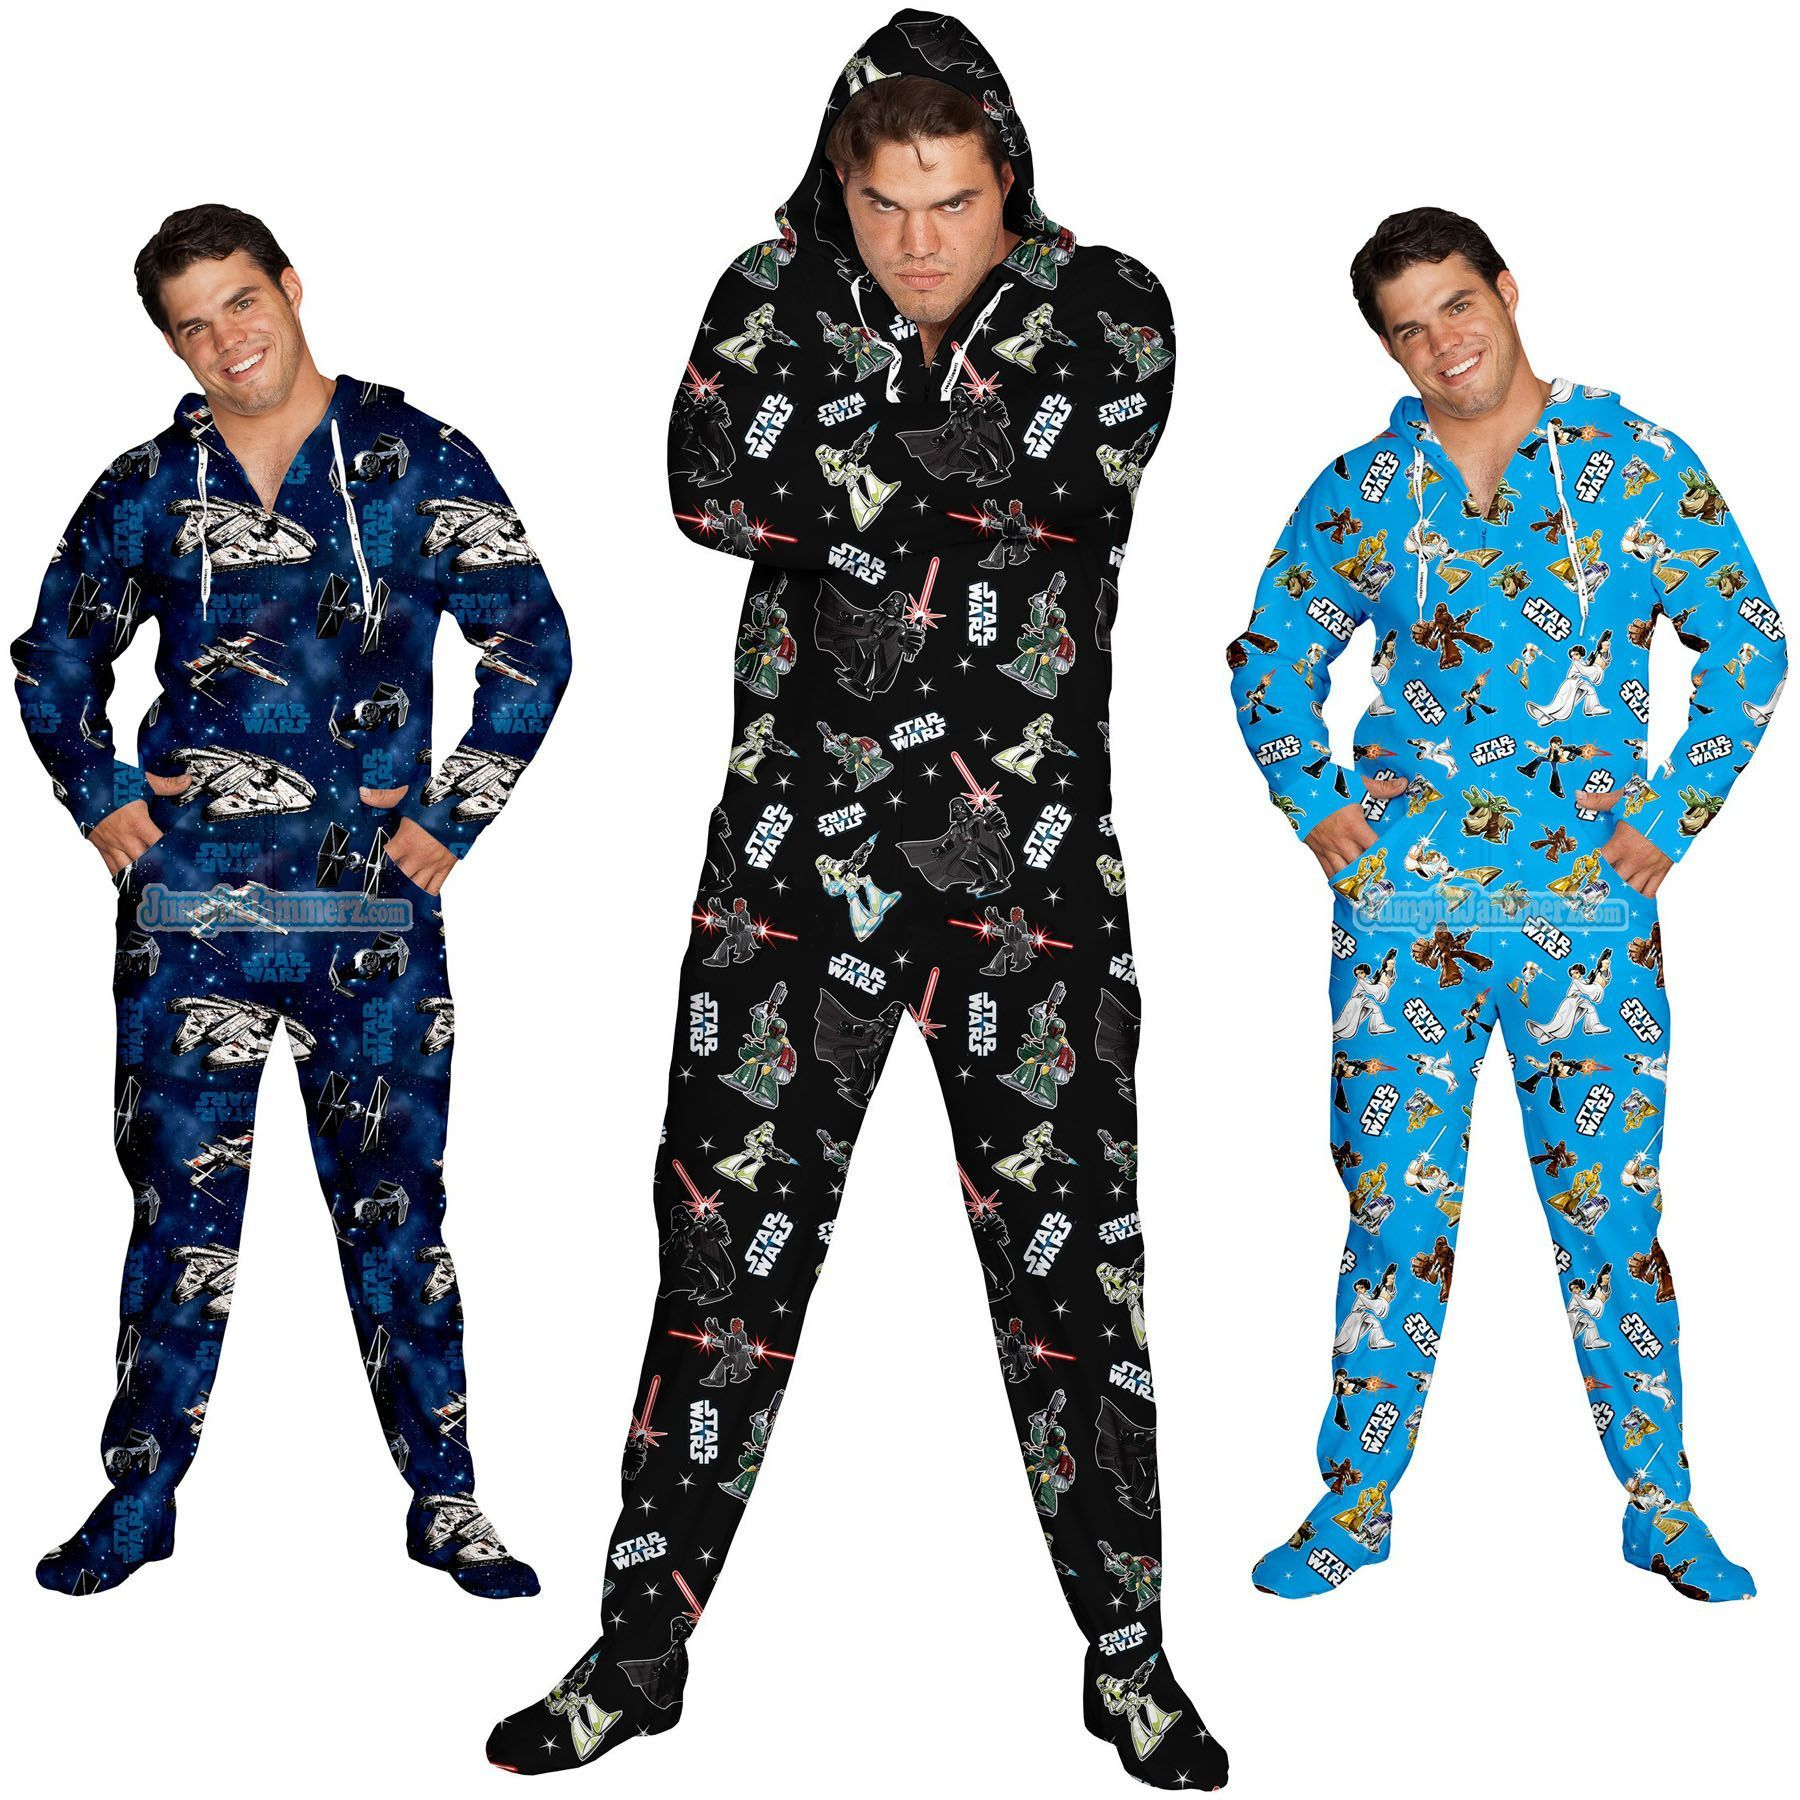 Pin On Jumpsuits One Piece Clothing